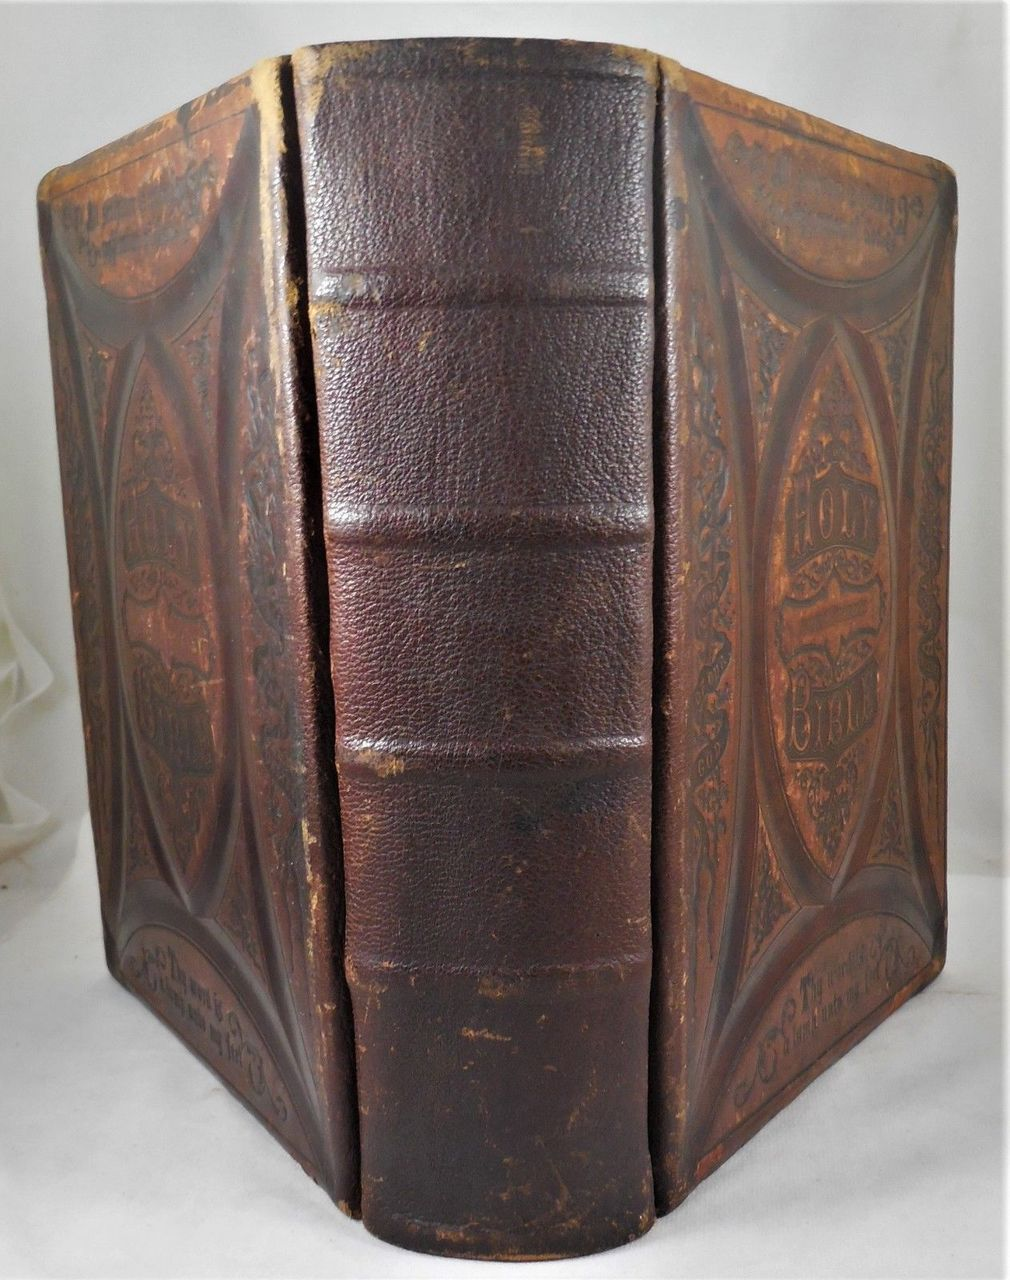 THE LATEST ILLUSTRATED POLYGLOT FAMILY BIBLE - 1872 [Custom Binding]